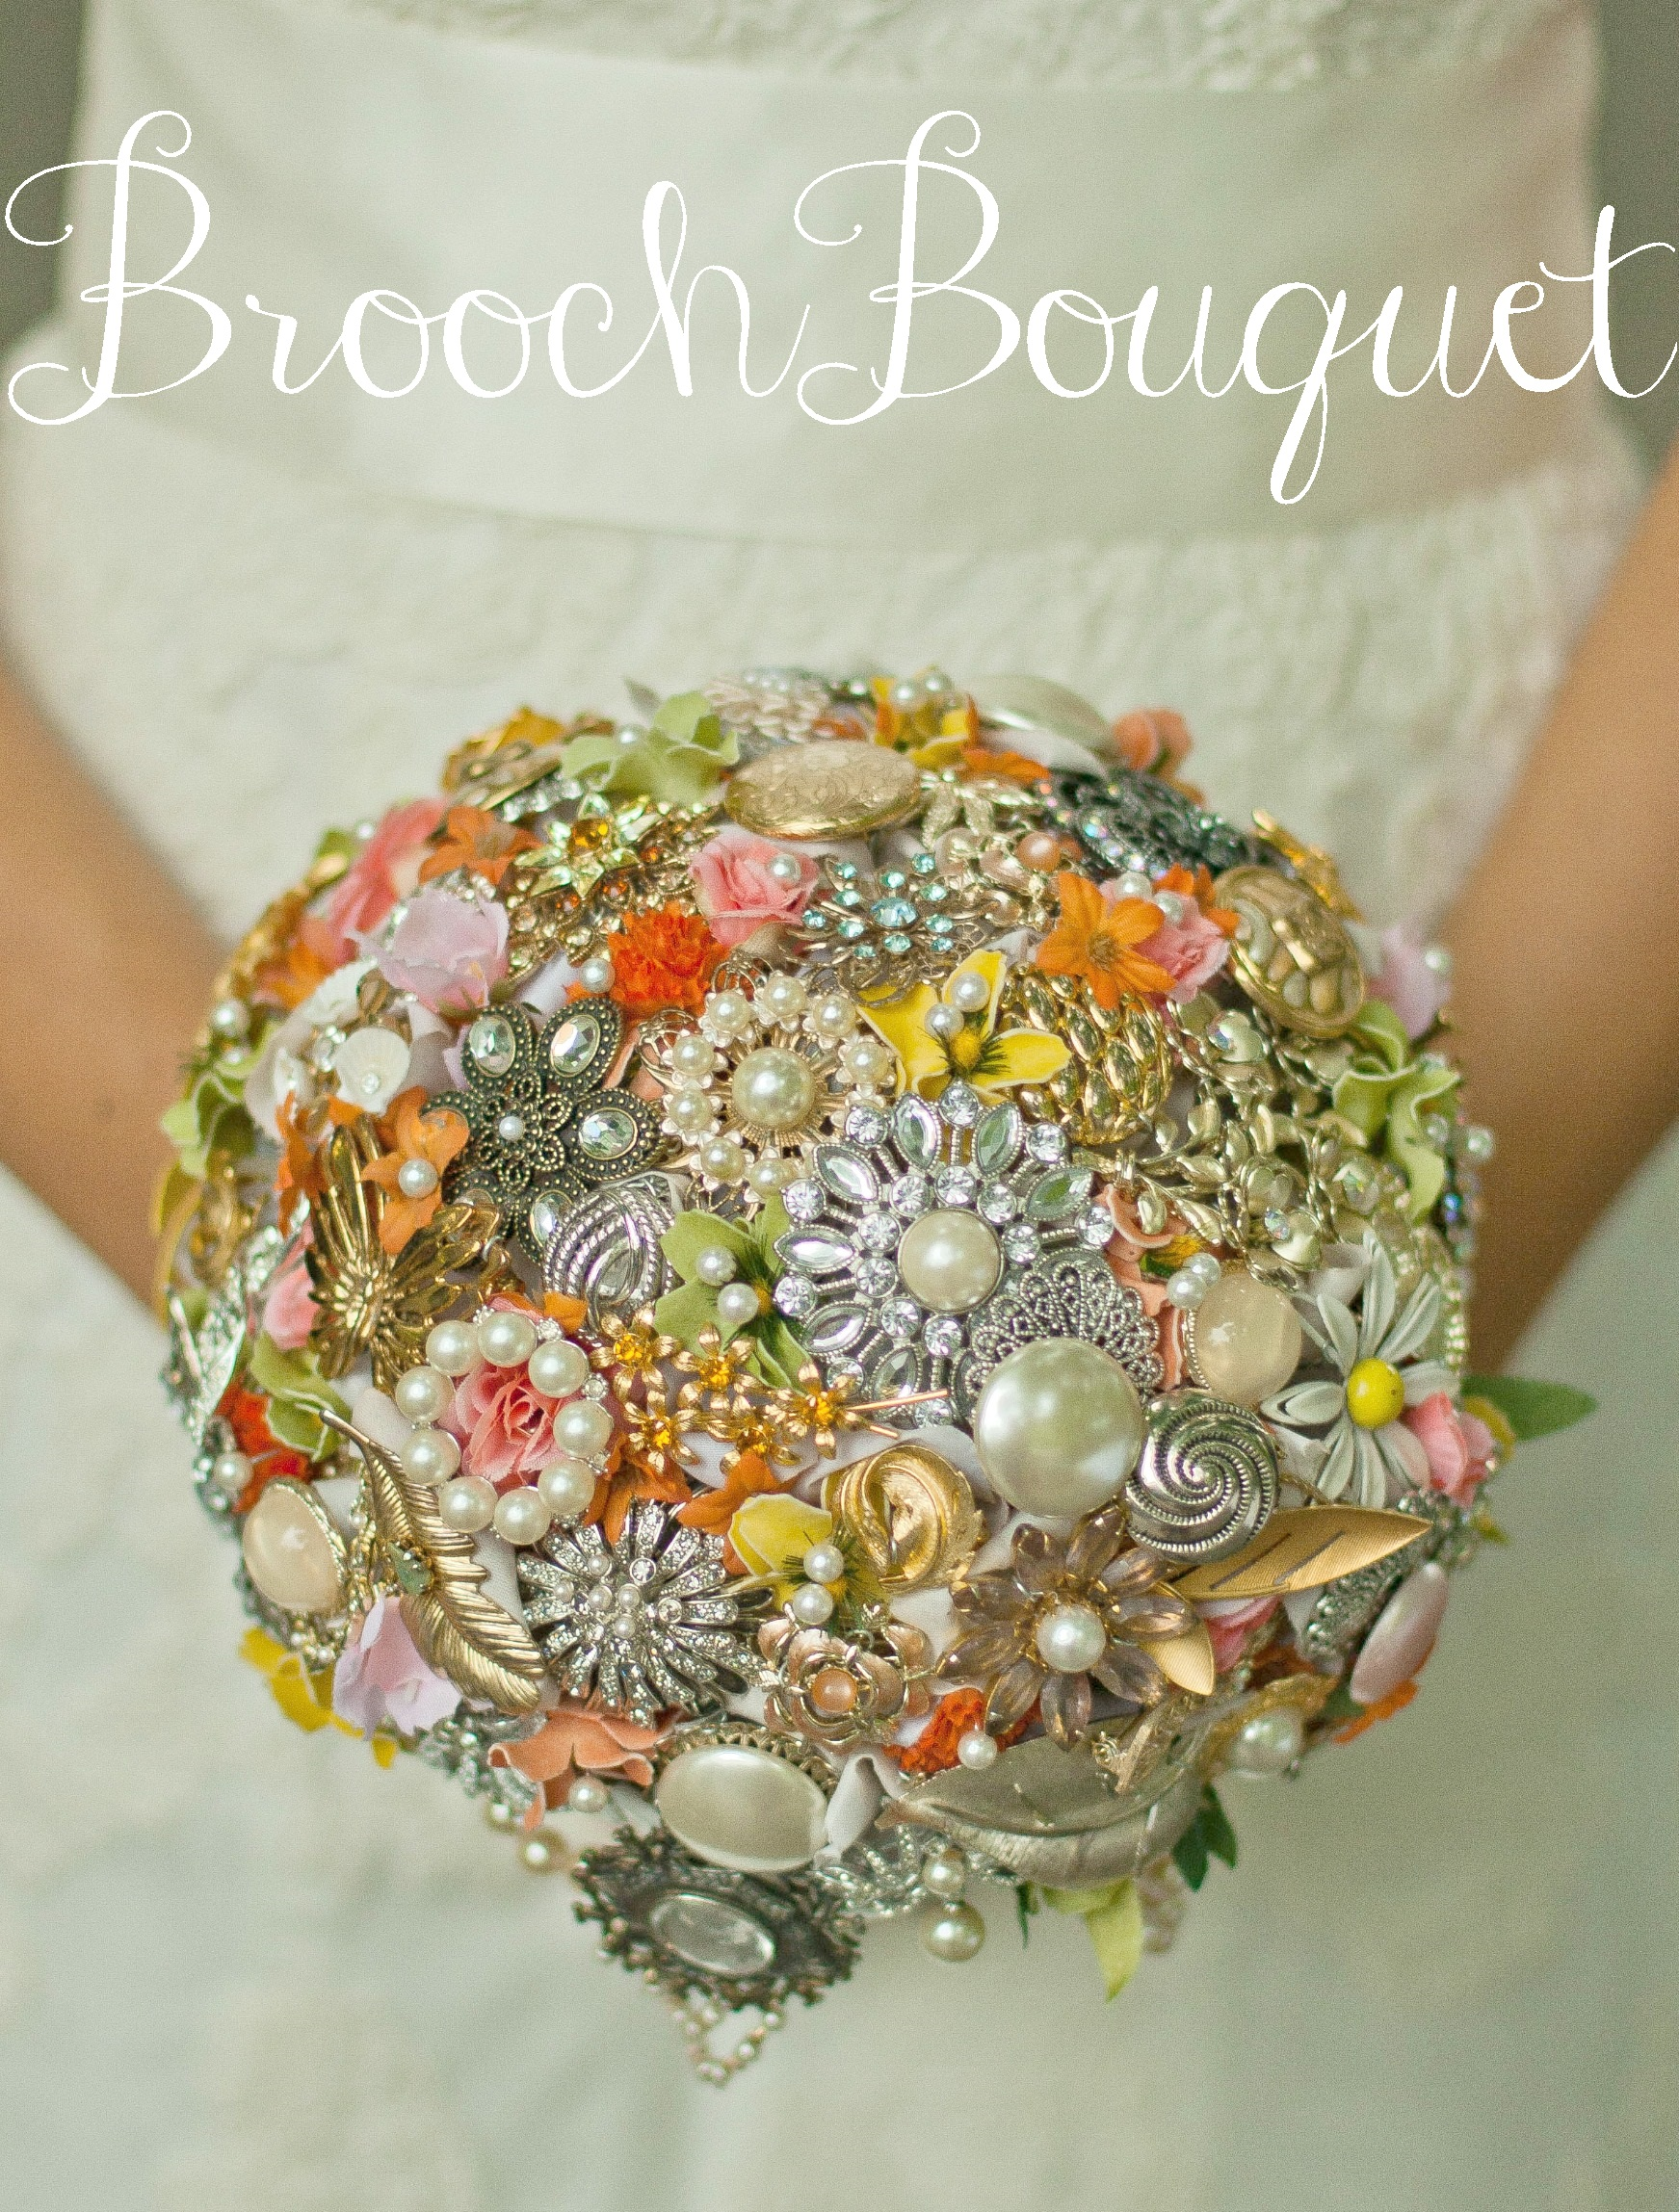 Brooch Bouquet Tutorial In Which I Create An Elaborate Analogy